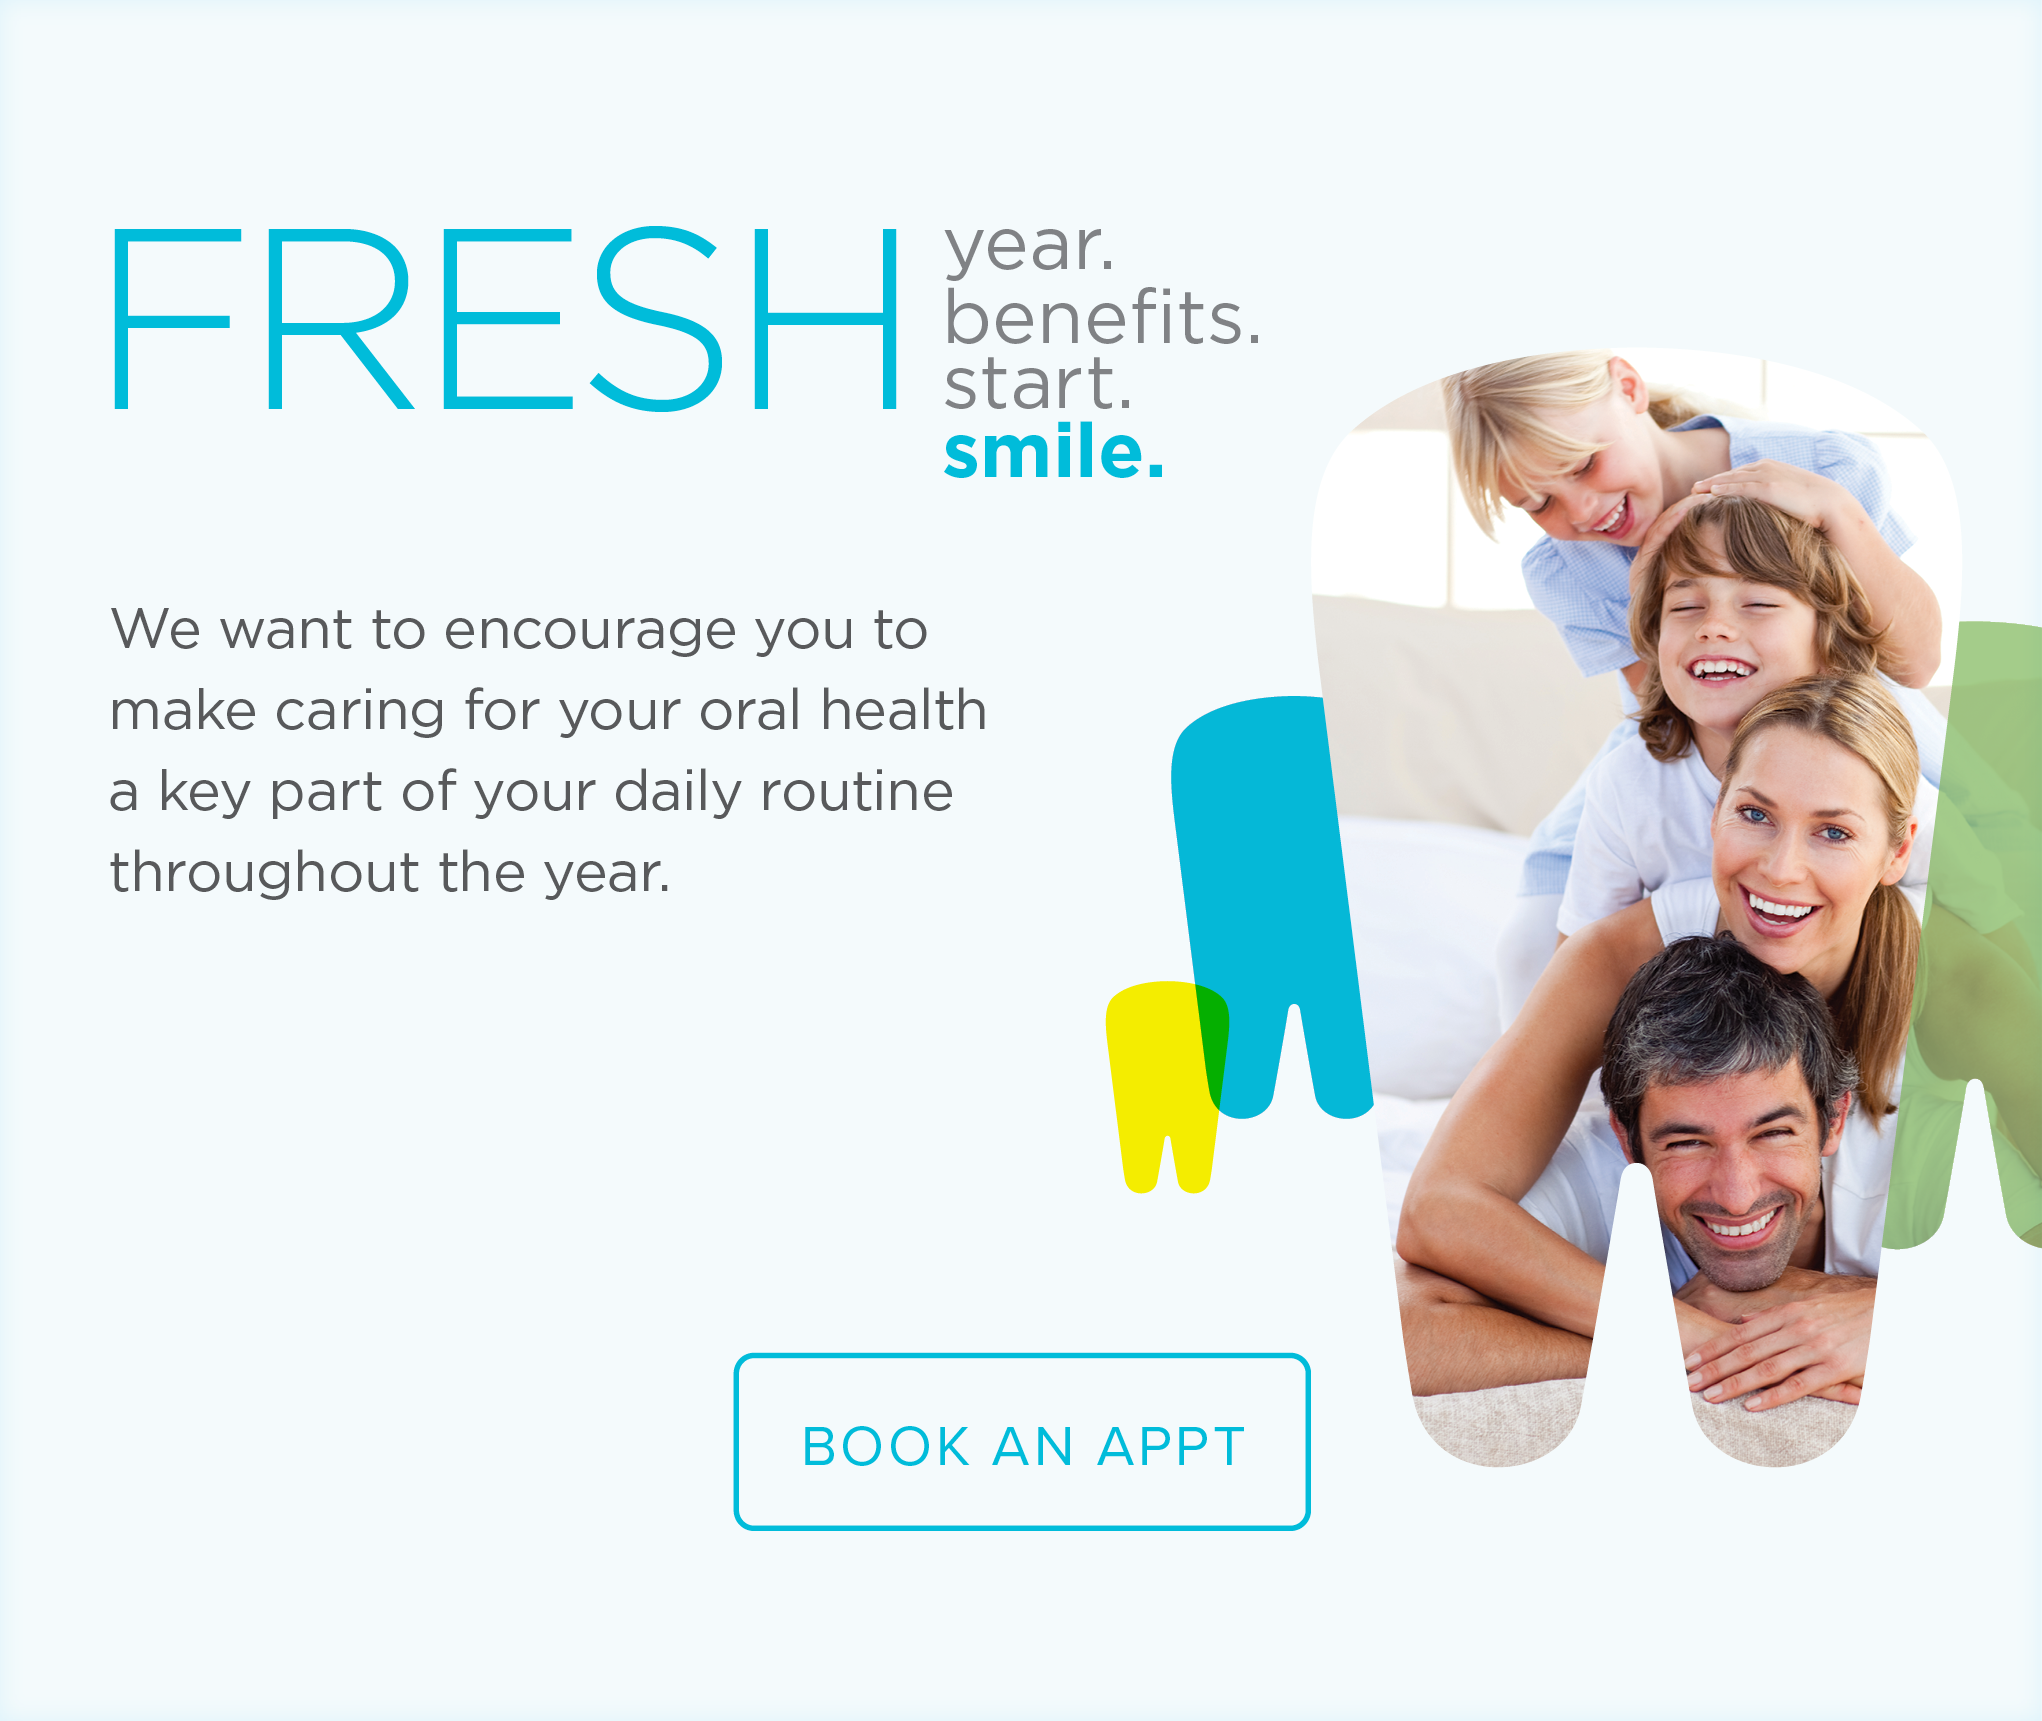 Clovis Crossing Dental Group and Orthodontics - Make the Most of Your Benefits